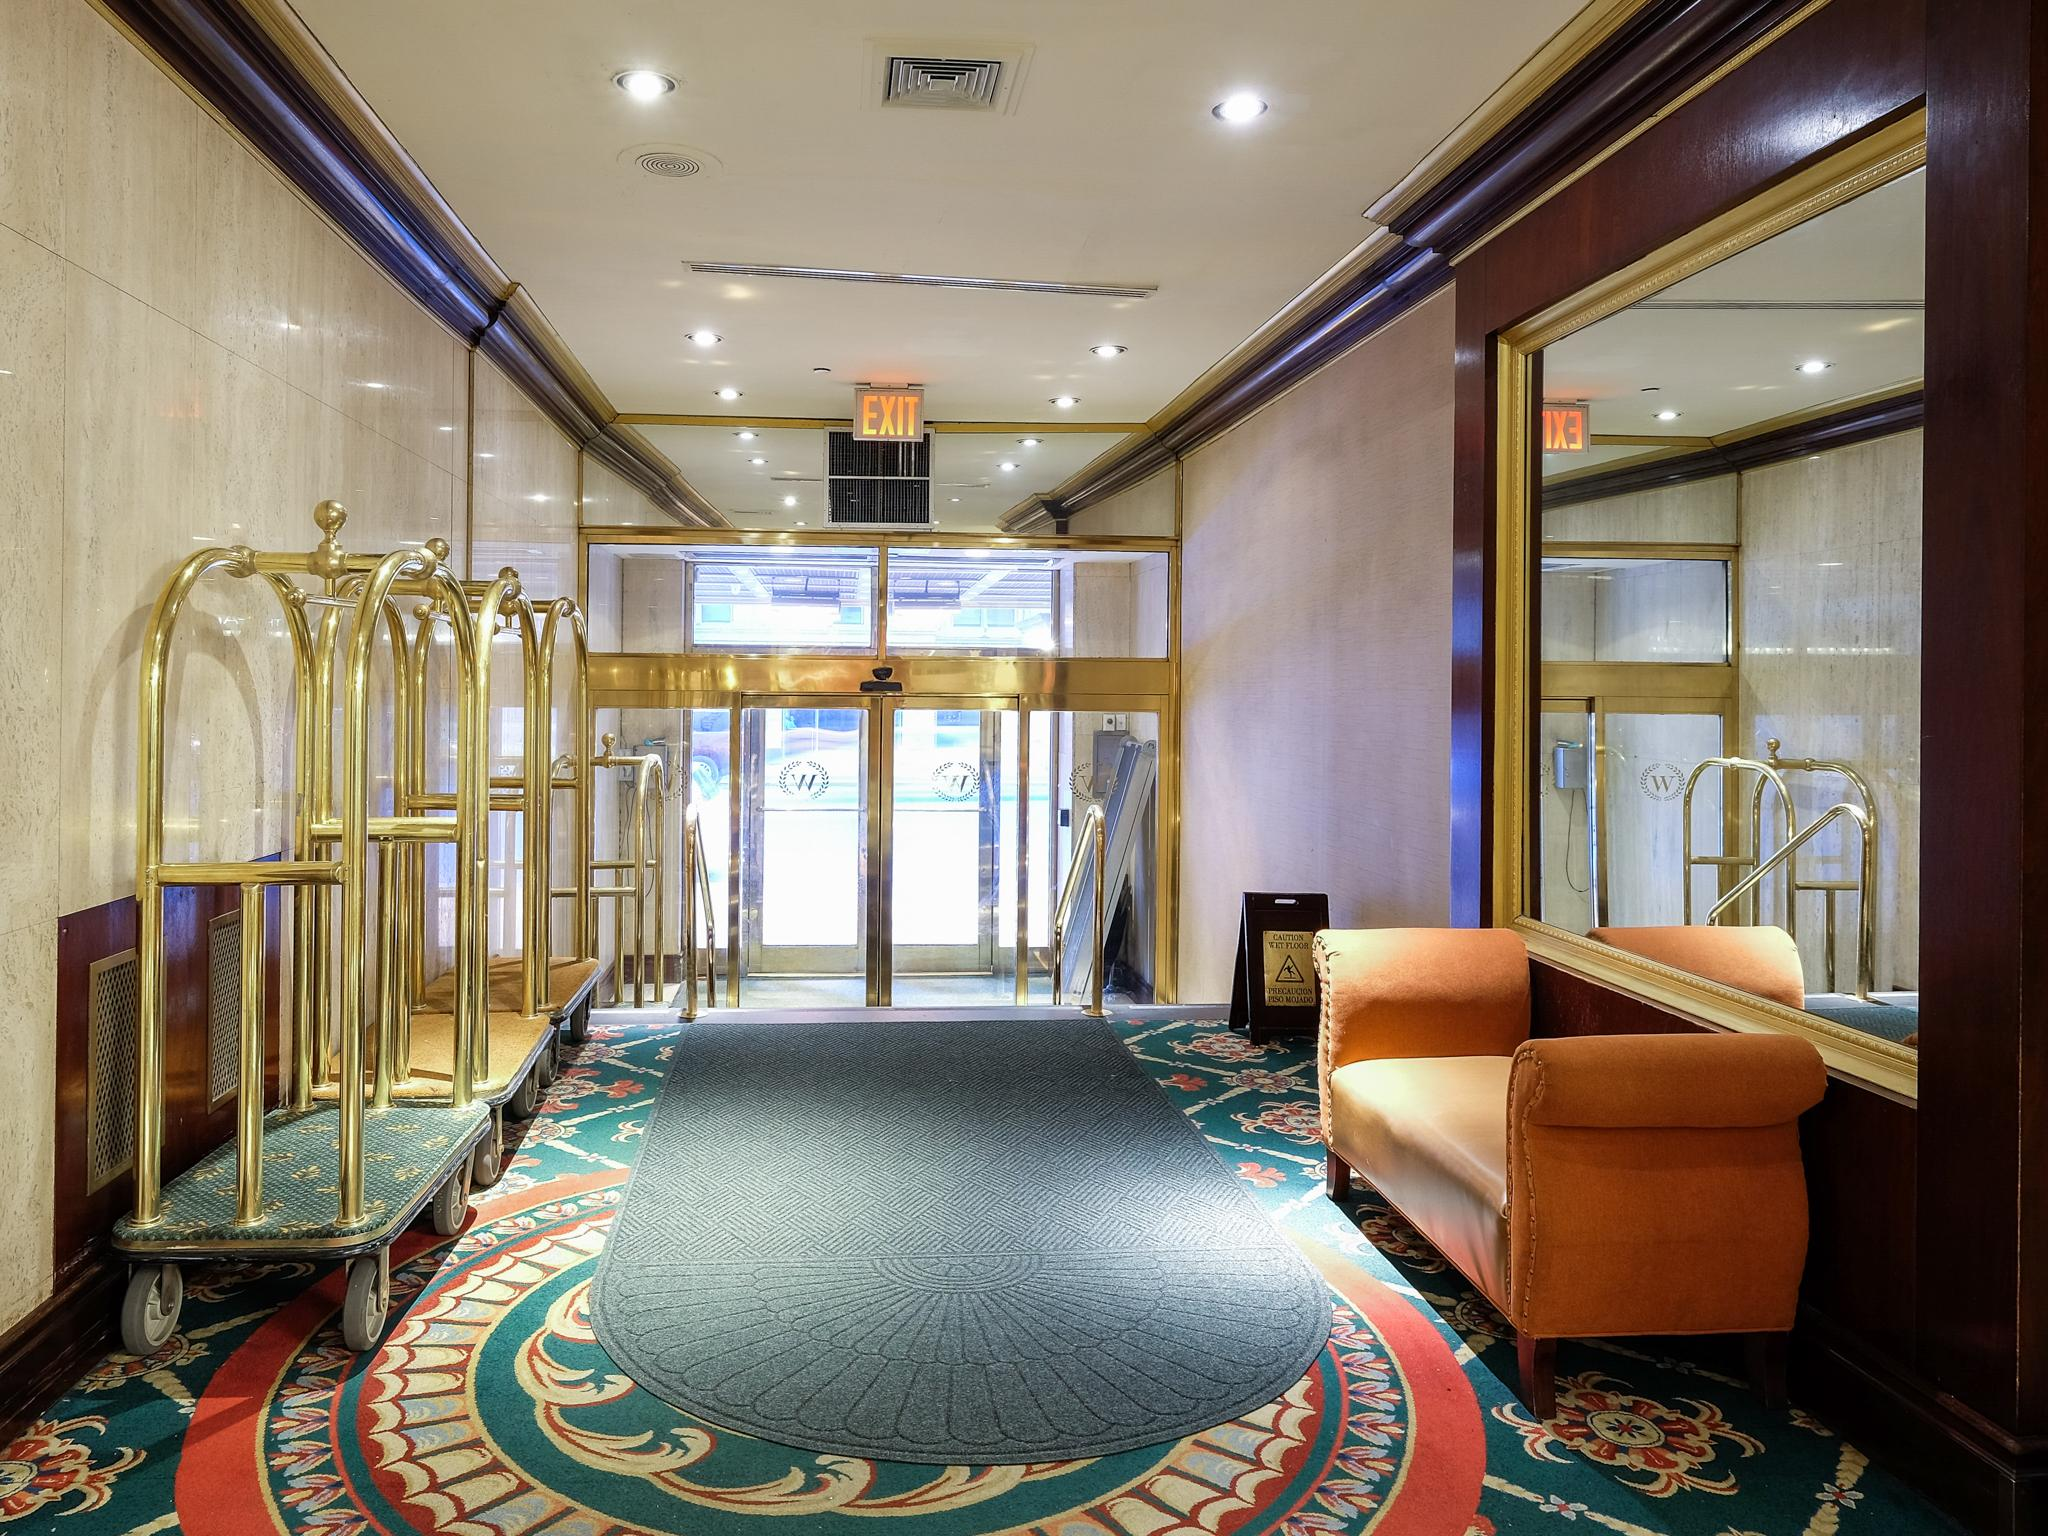 Wellington hotel deluxe double Hotels Com Lobby Wellington Hotel Qt Hotels Resorts Wellington Hotel In New York ny Room Deals Photos Reviews